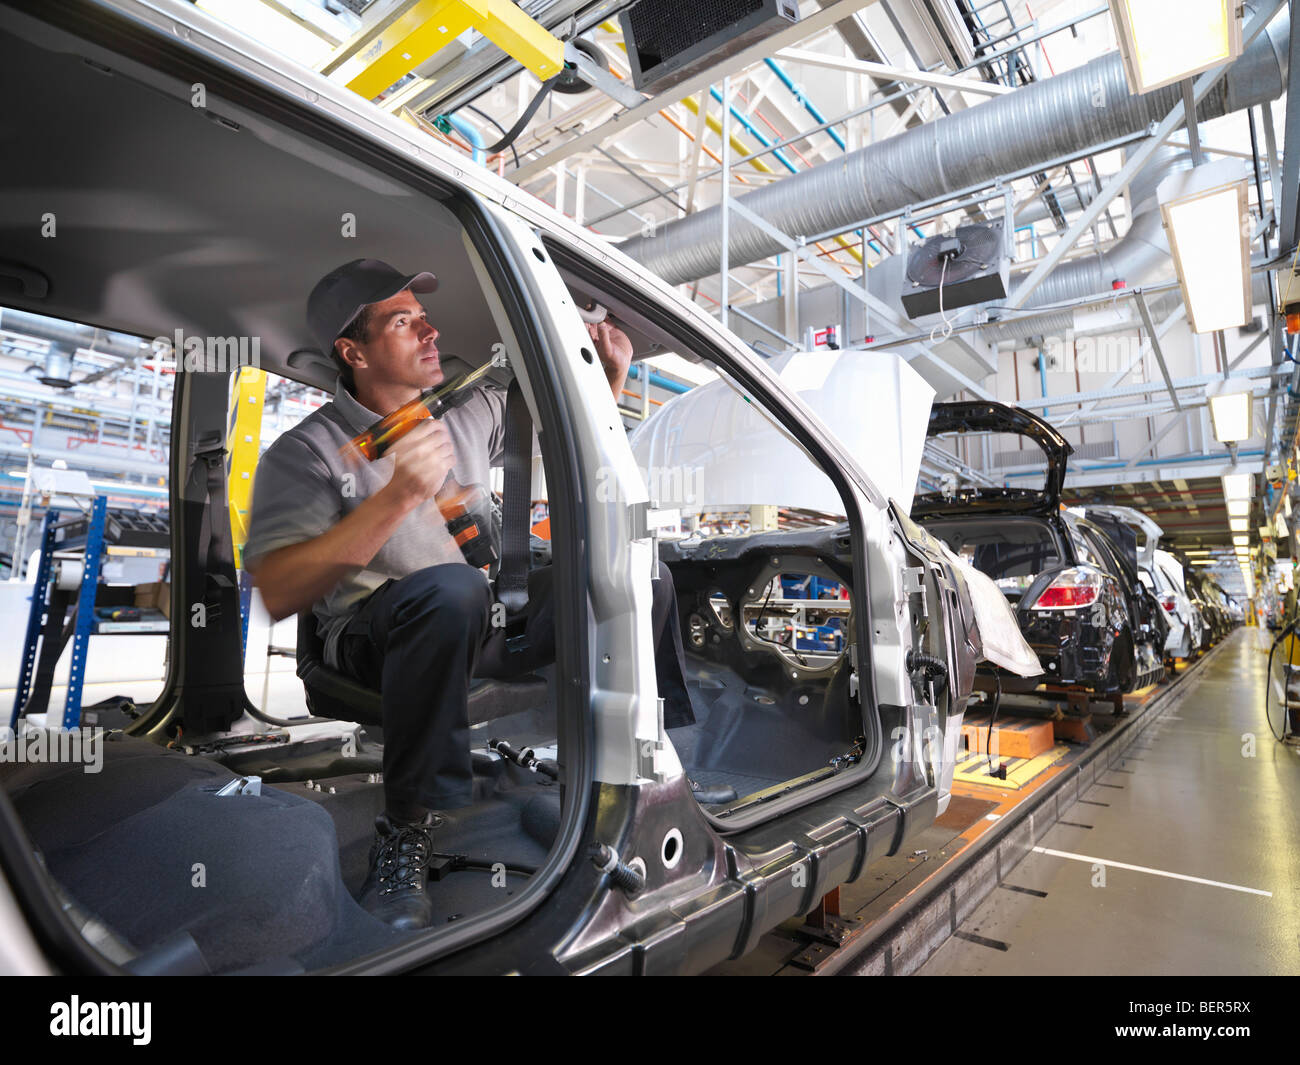 Car Plant Worker On Production Line - Stock Image